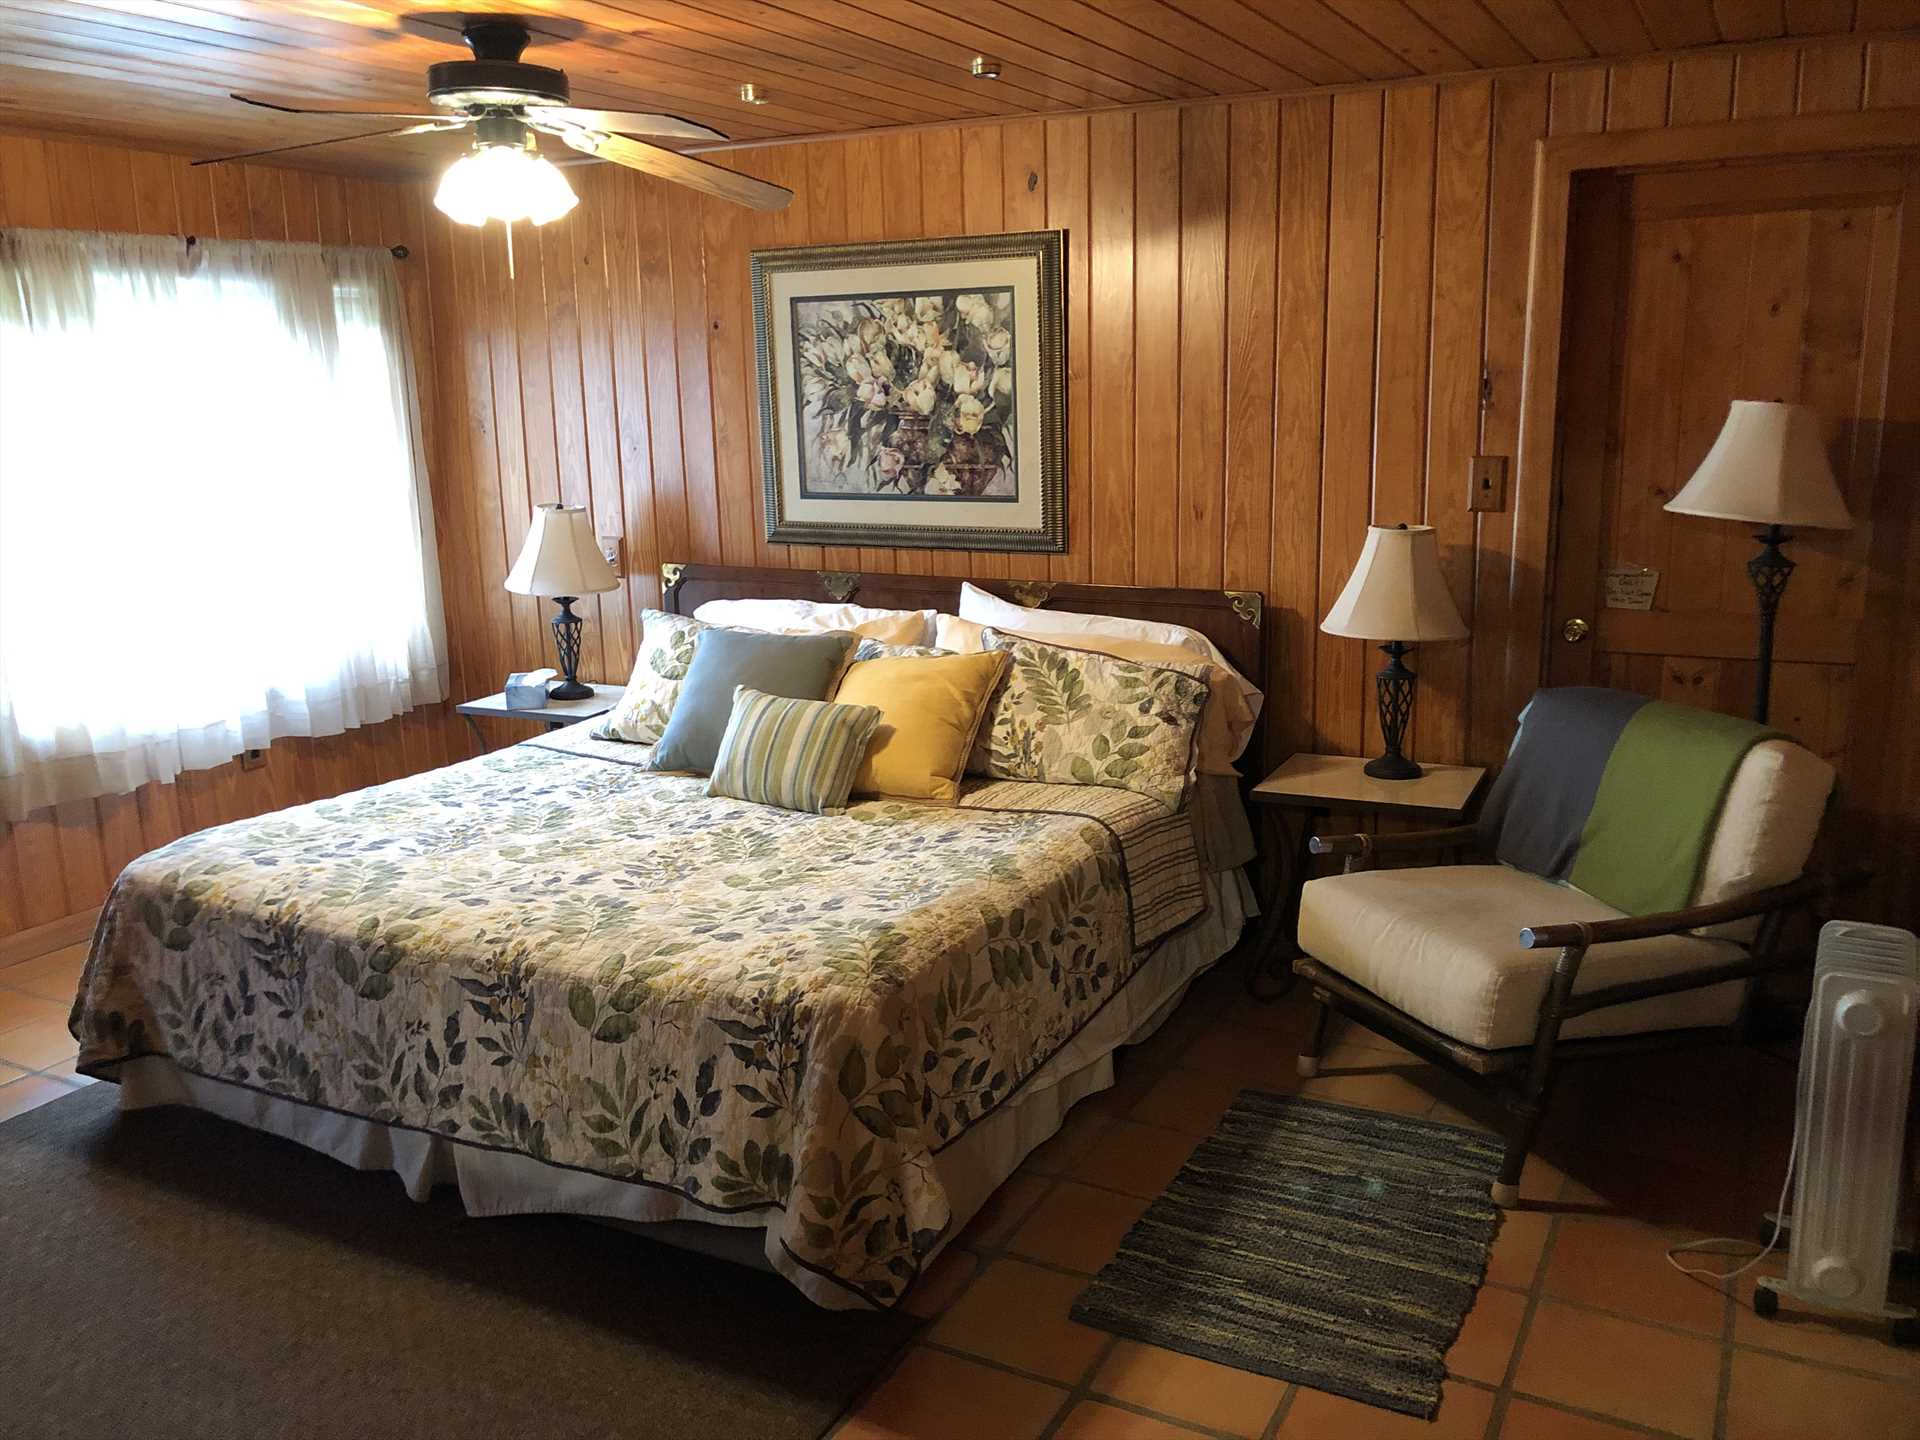 Another king-sized bed graces the second bedroom, both of which are relaxing places to wind down after an adventurous day.